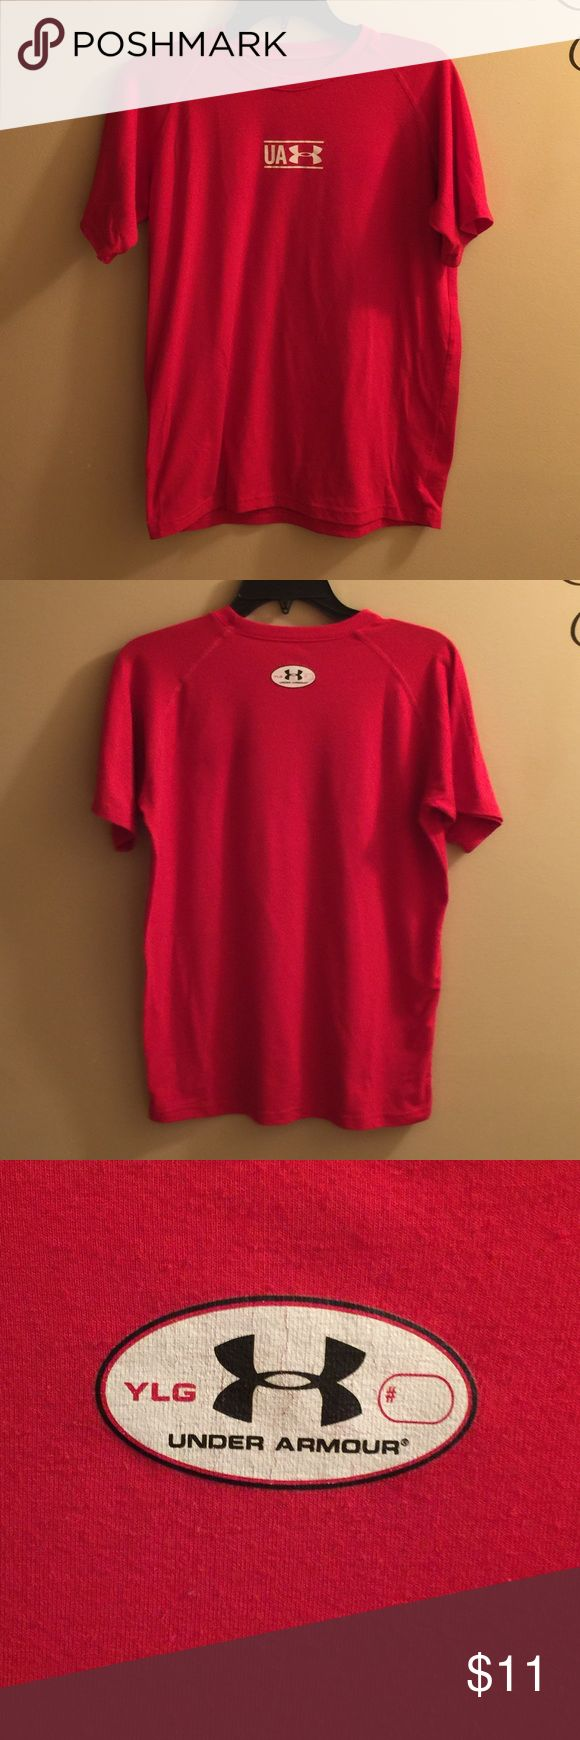 Under Armour T - shirt Great shape, no stains, short sleeve Under Armour Shirts & Tops Tees - Short Sleeve